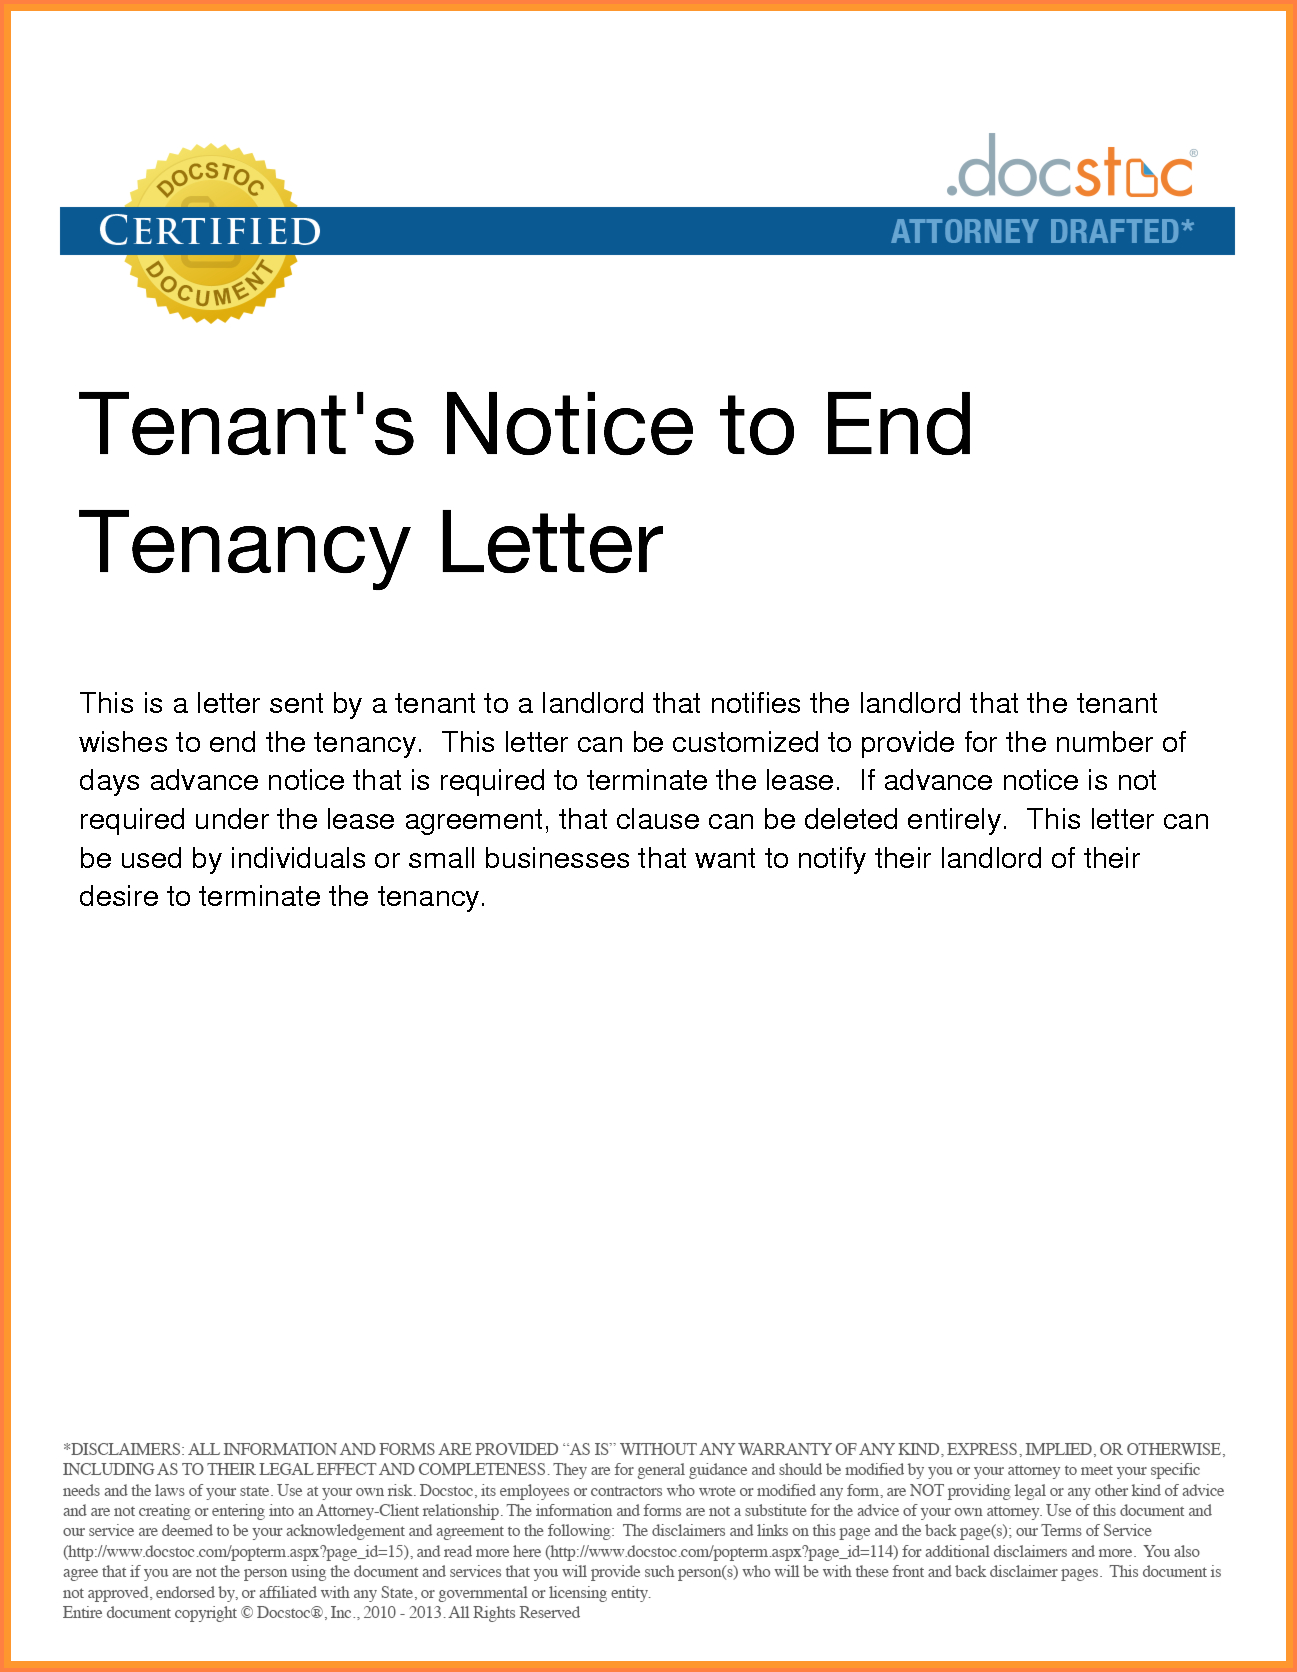 Lease Termination Letter to Tenant Template - Mercial Lease Termination Letter to Tenant Ideas Collection